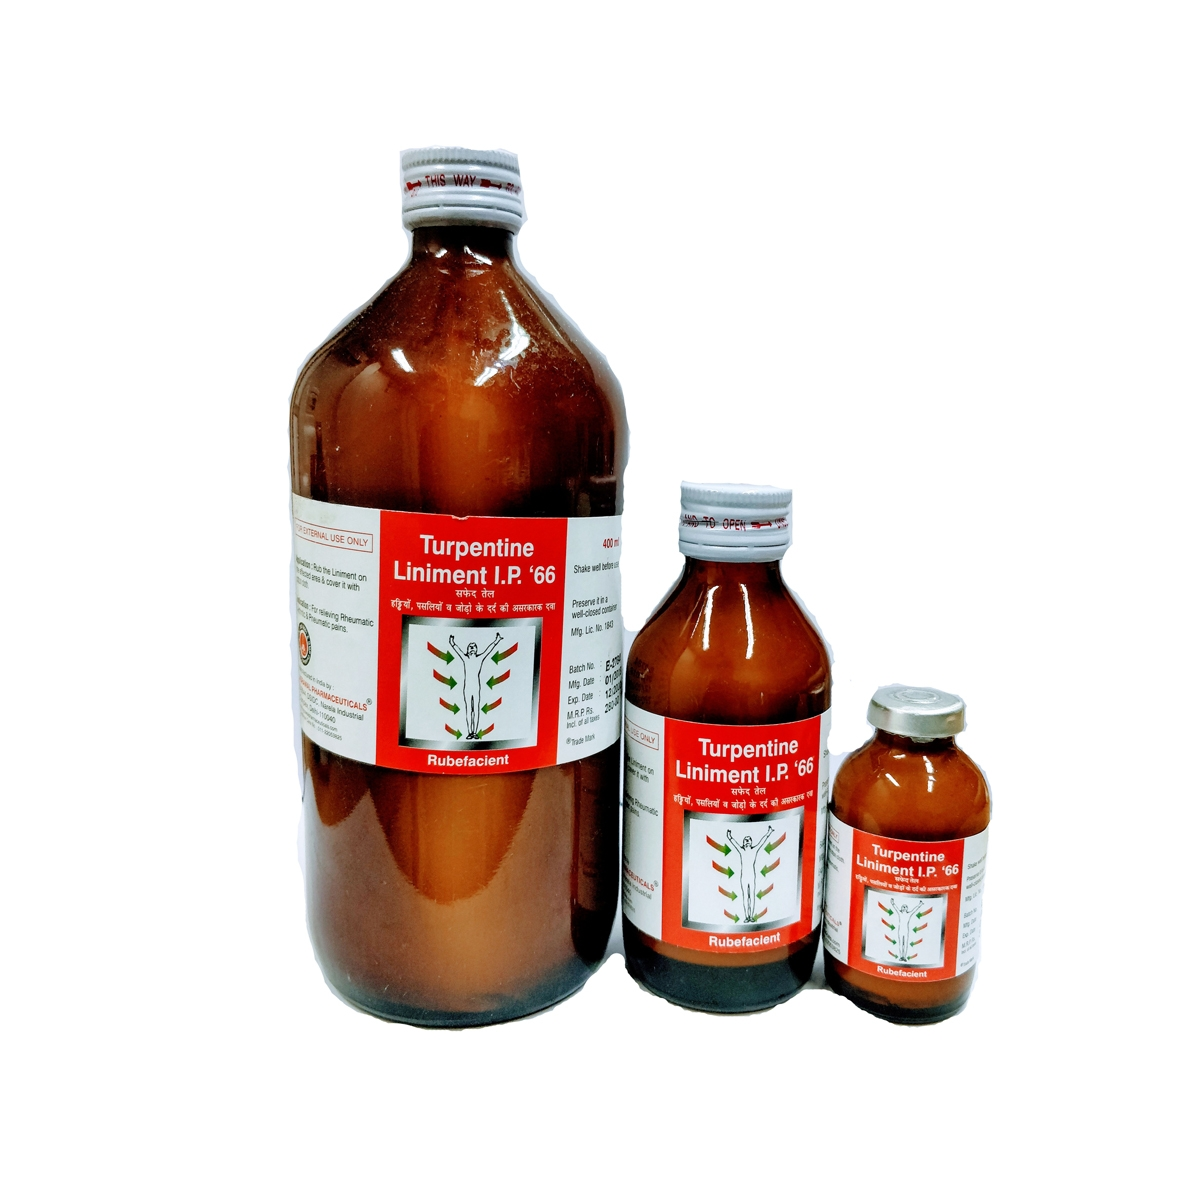 Turpentine Liniment - Agrawal Drugs Pvt  Ltd